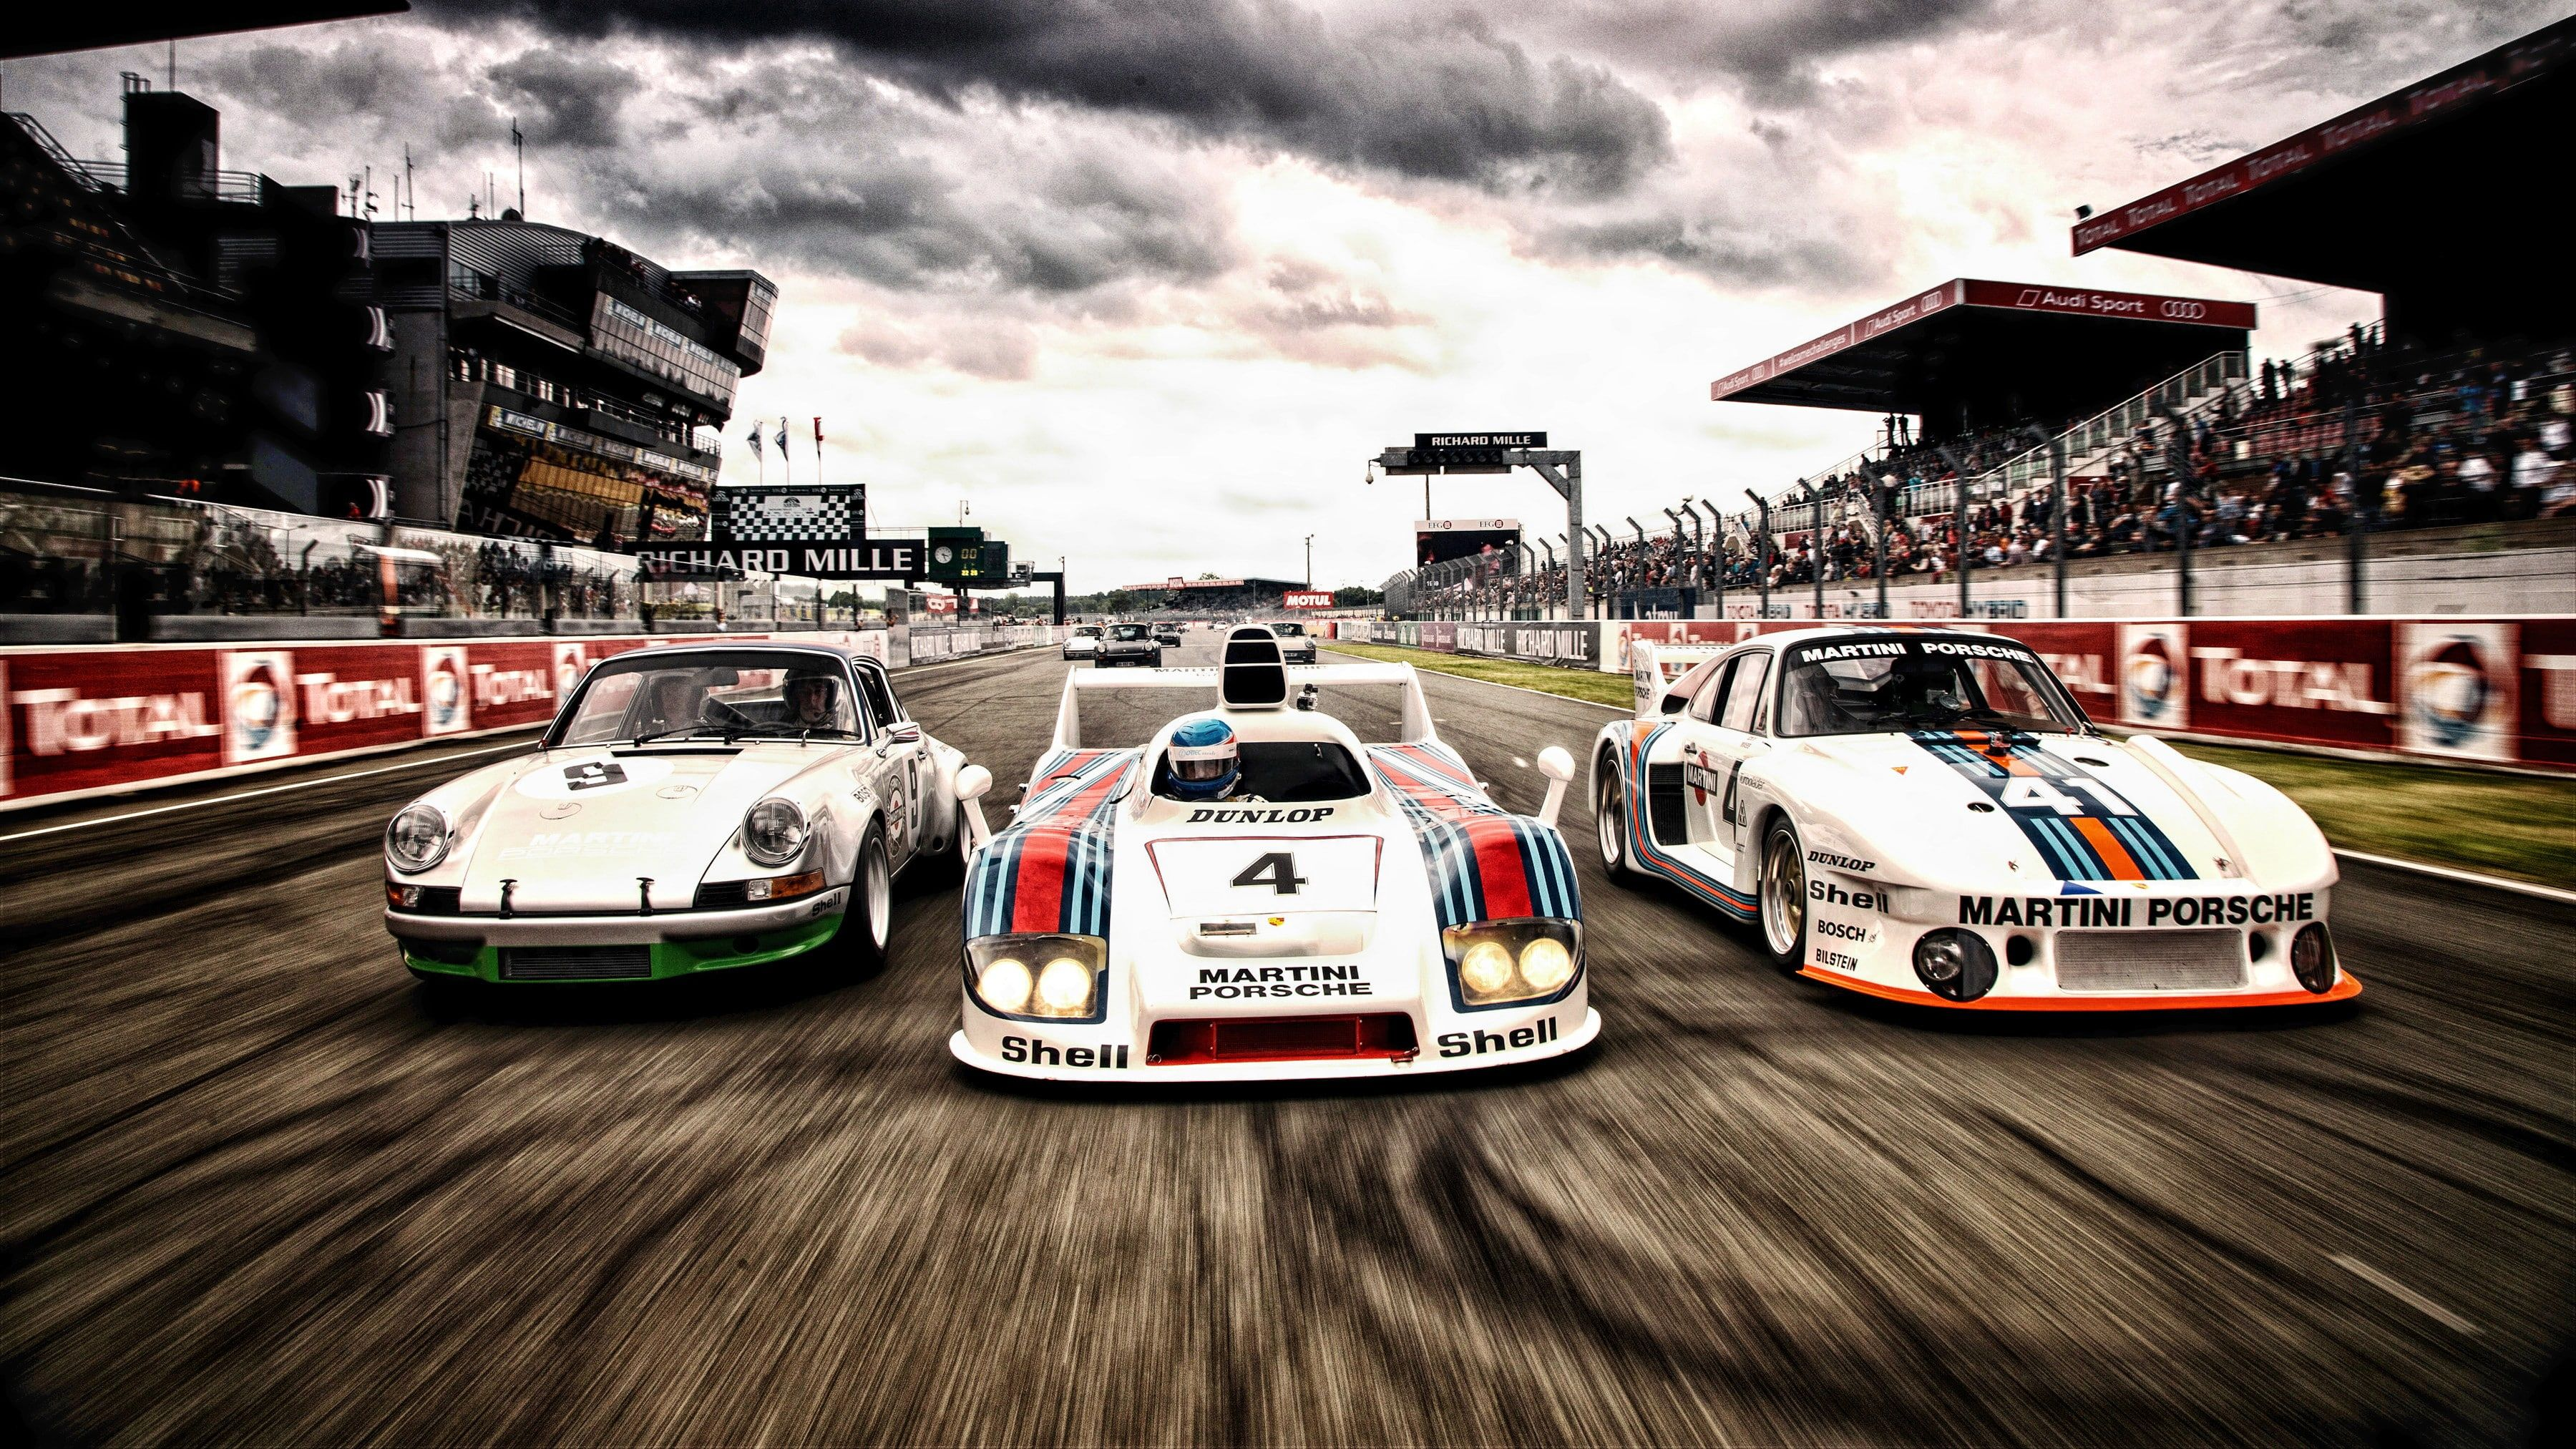 Car Race Cars Porsche Racing Track Cool Speed Car Race Cars Porsche Racing Track Cool Speed 3600x2025 2k Wallpaper Hdwallpaper Desk En 2020 Walle Autos